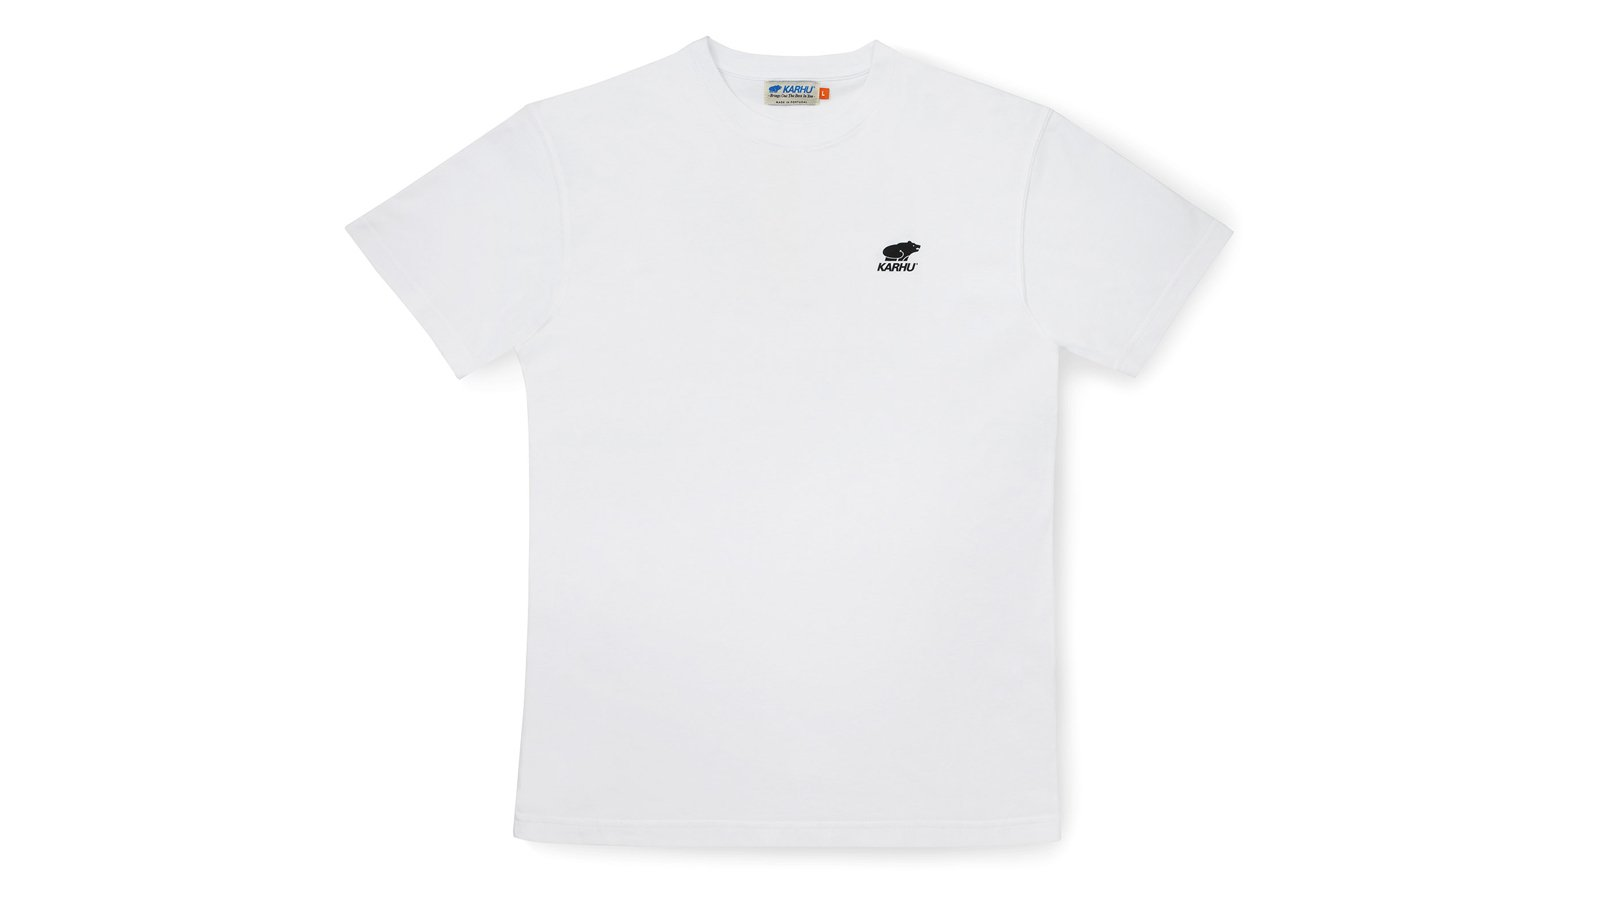 Worldwide T-shirt - White/Black